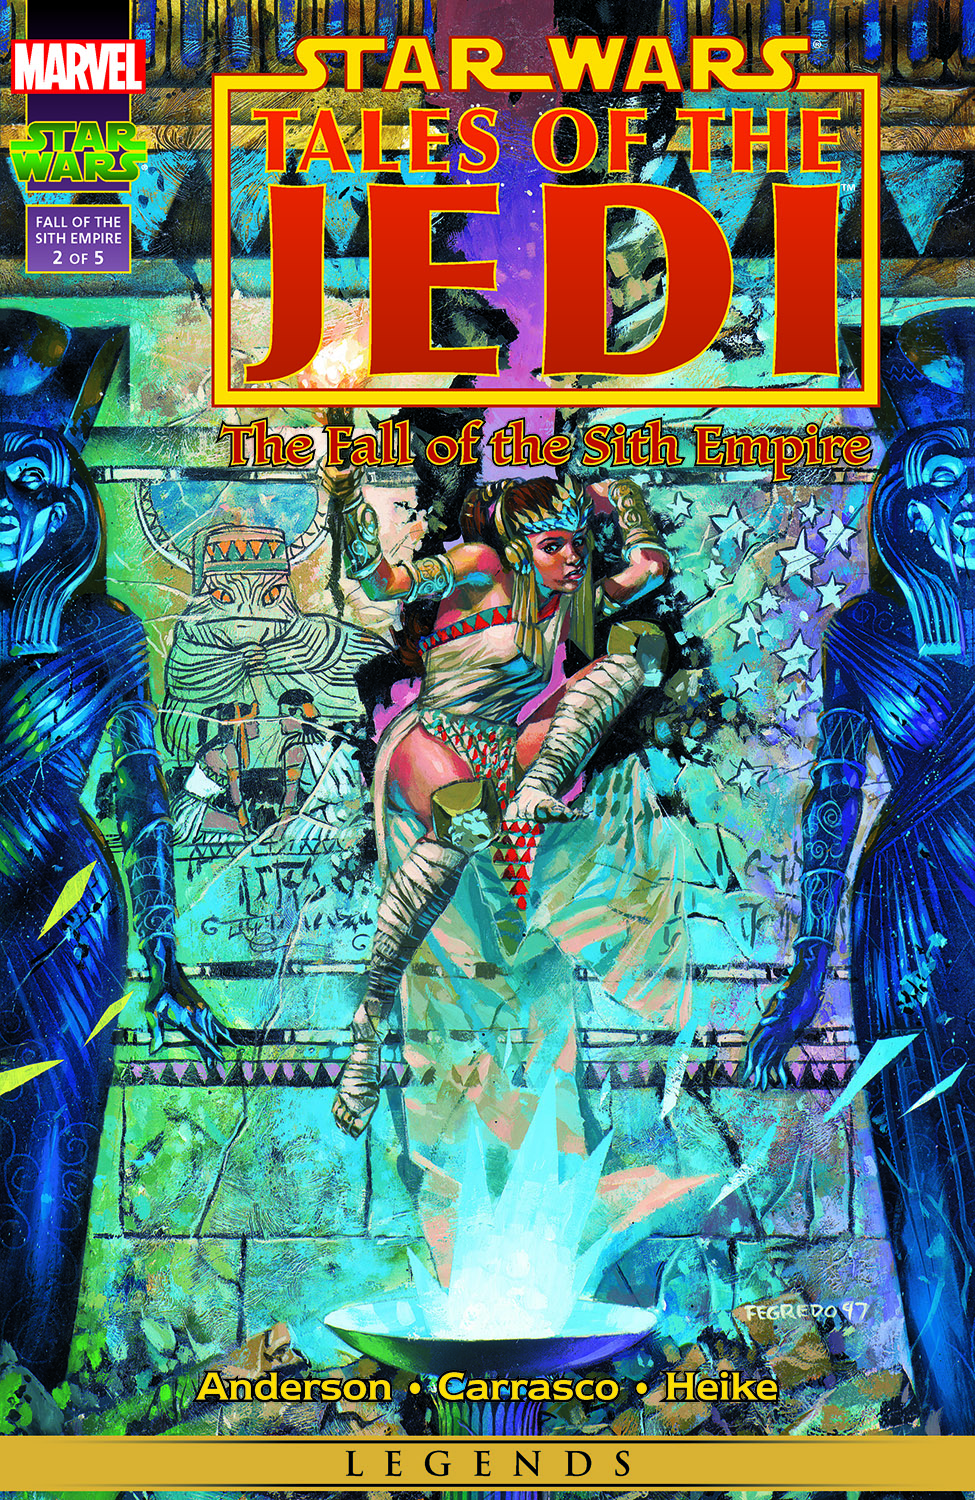 Star Wars: Tales of the Jedi - The Fall of the Sith Empire (1997) #2